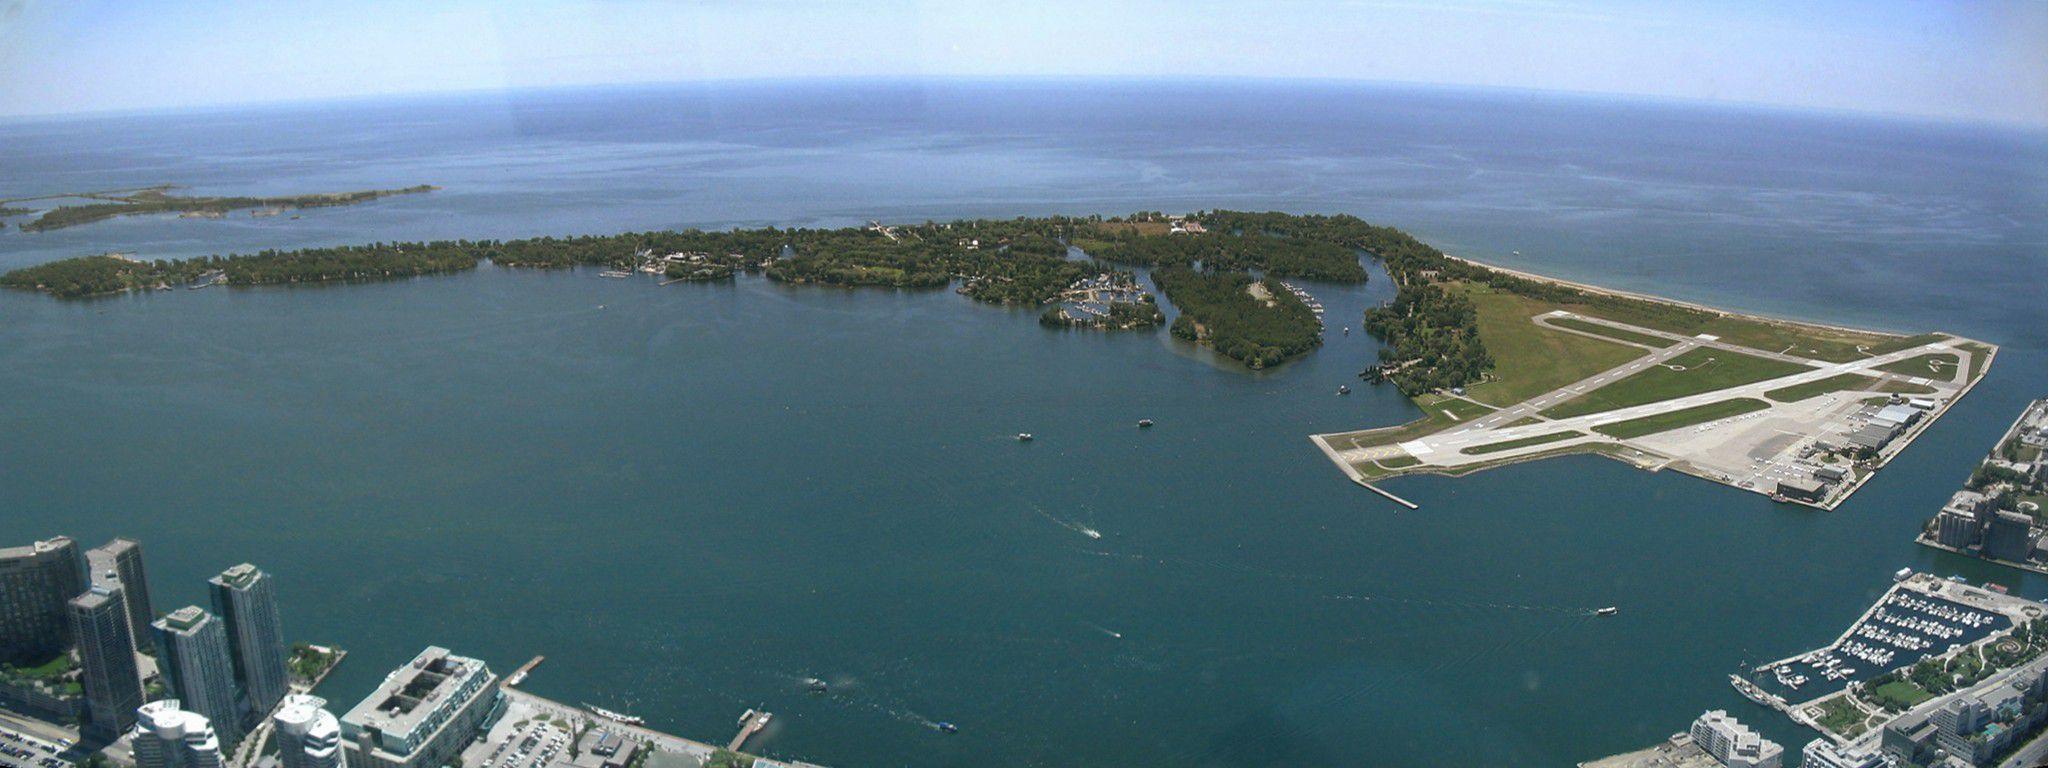 Panorama of Toronto Islands